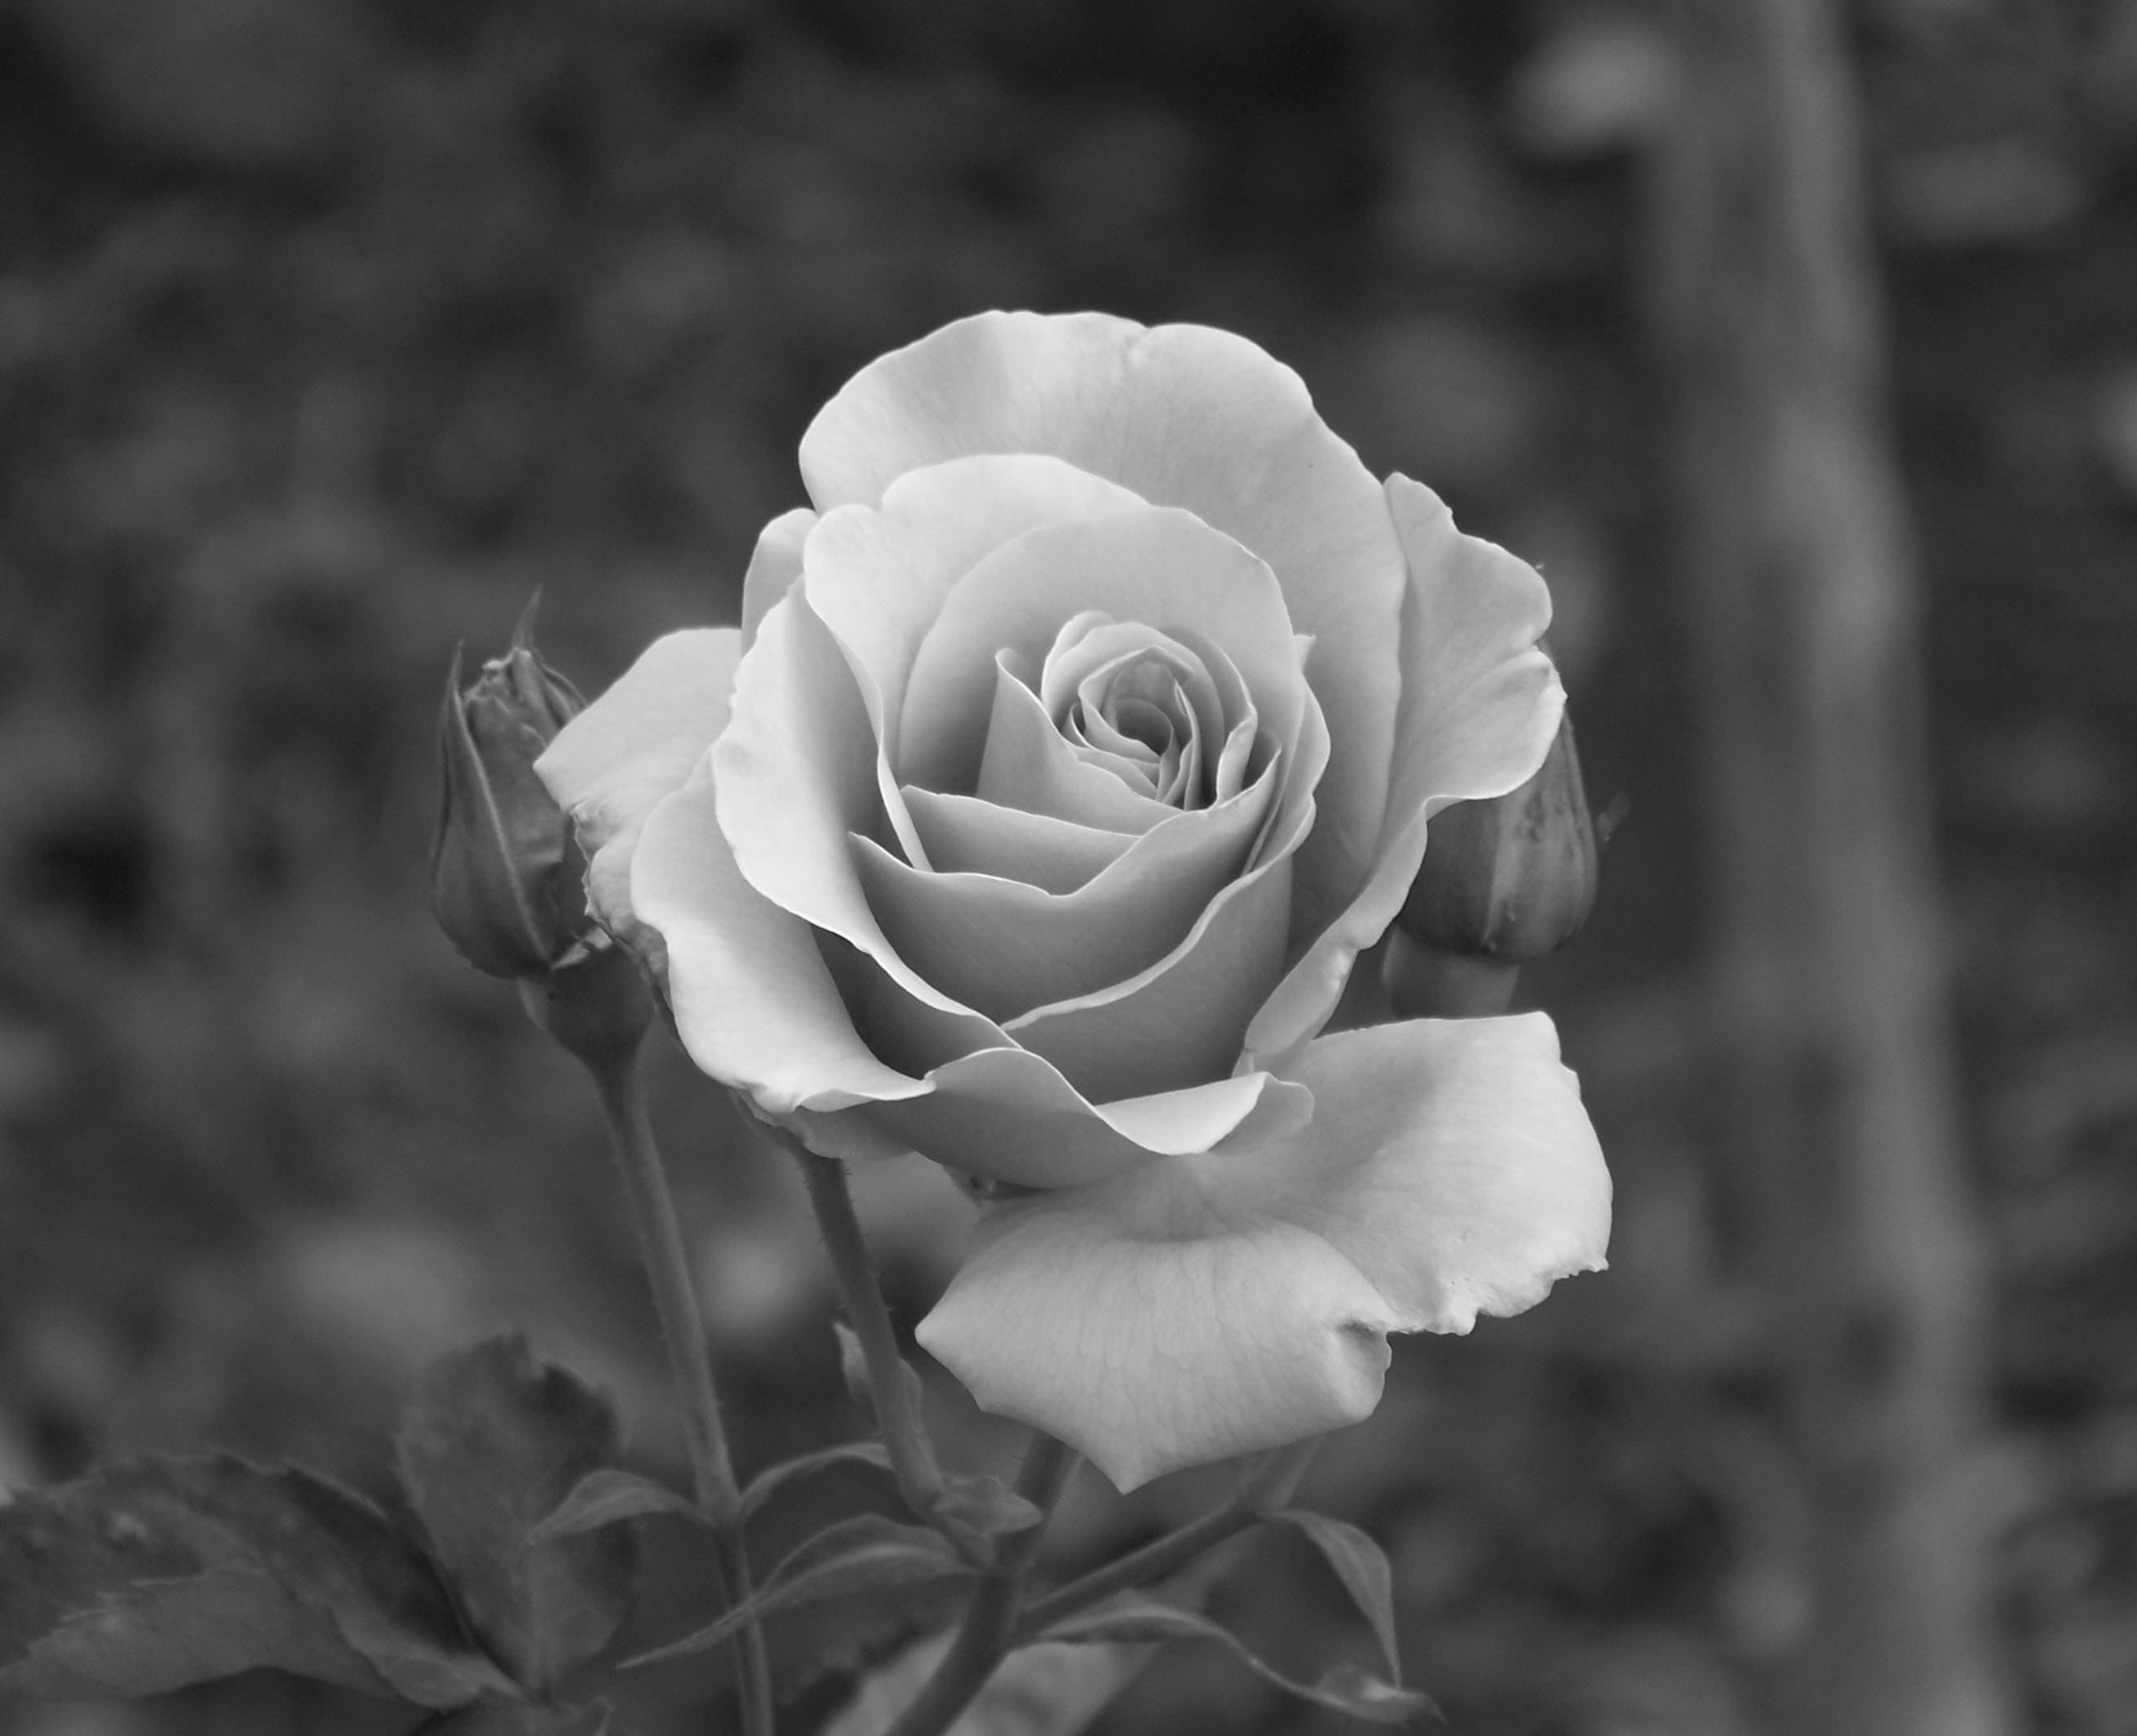 Free Rose Black N White Download Free Clip Art Free Clip Art on Clipart Library